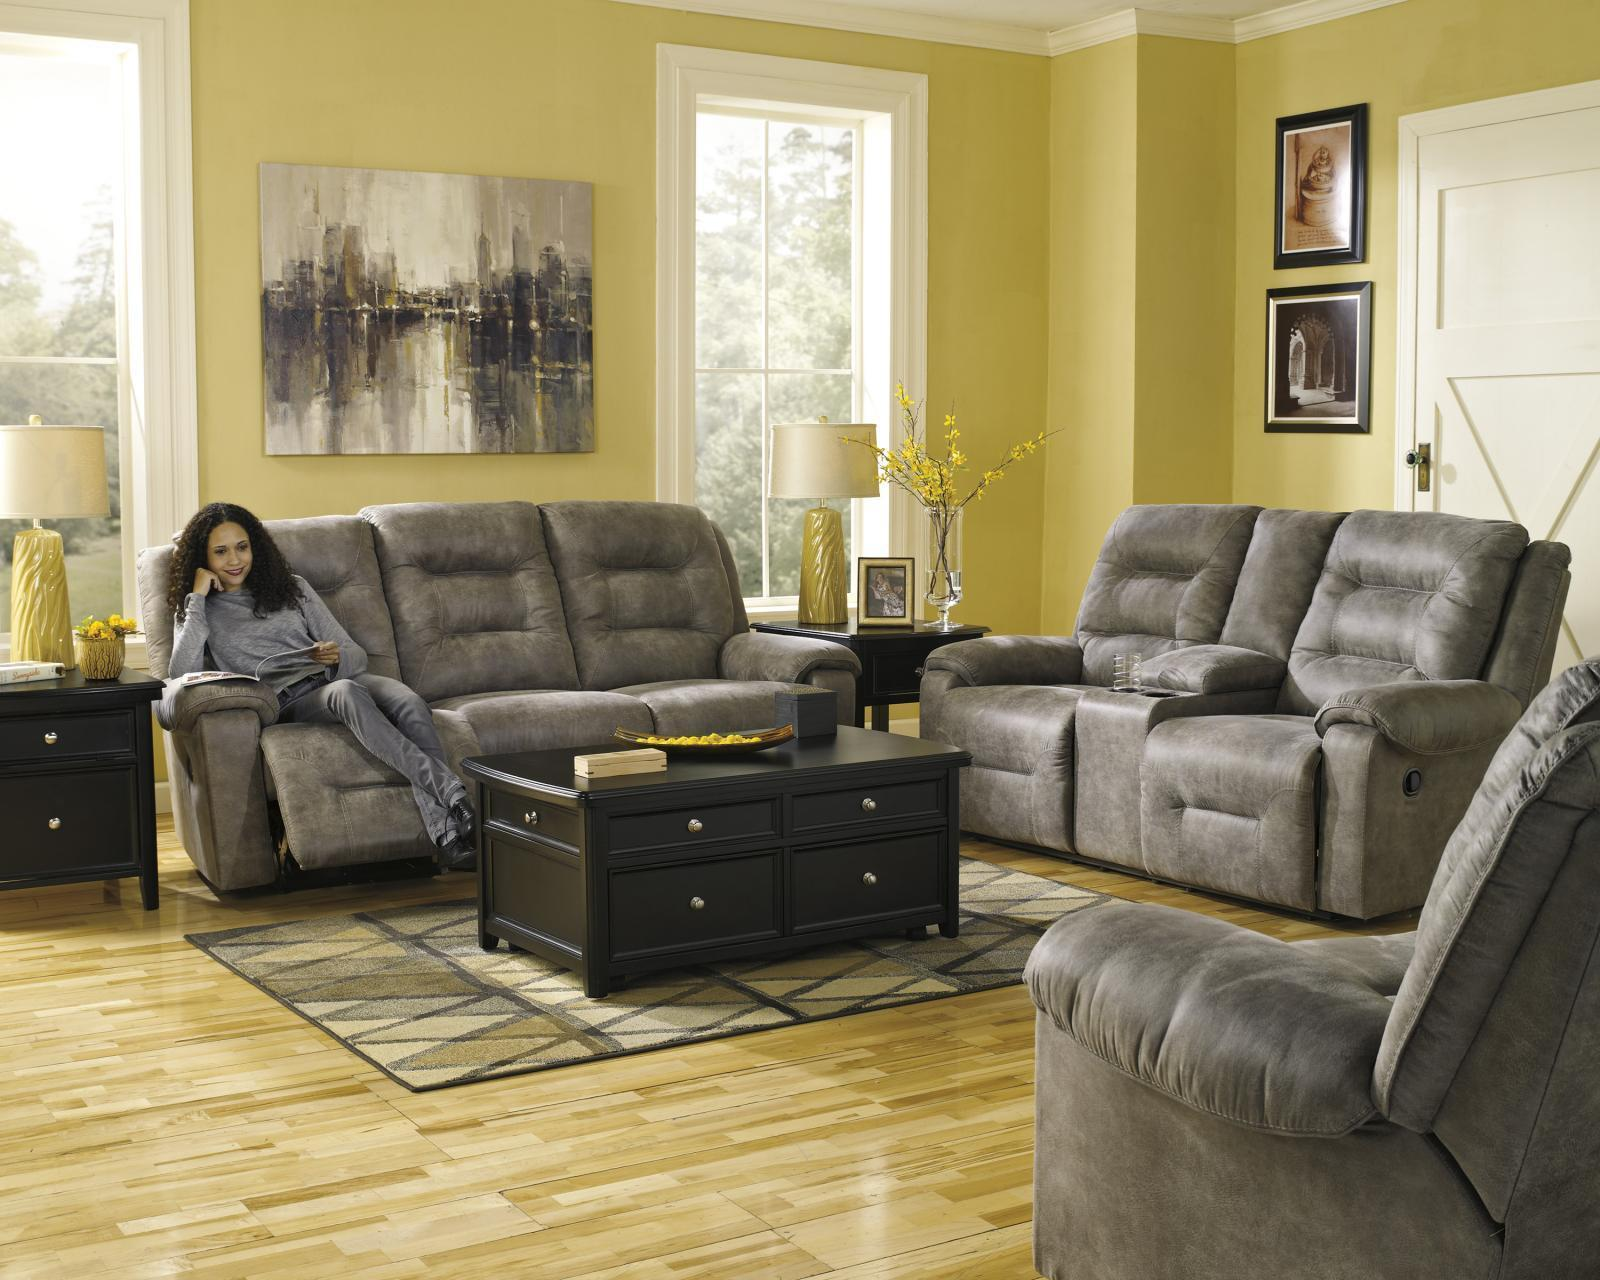 Ashley Rotation 3 Piece Living Room Set in Smoke with Power Contemporary Style